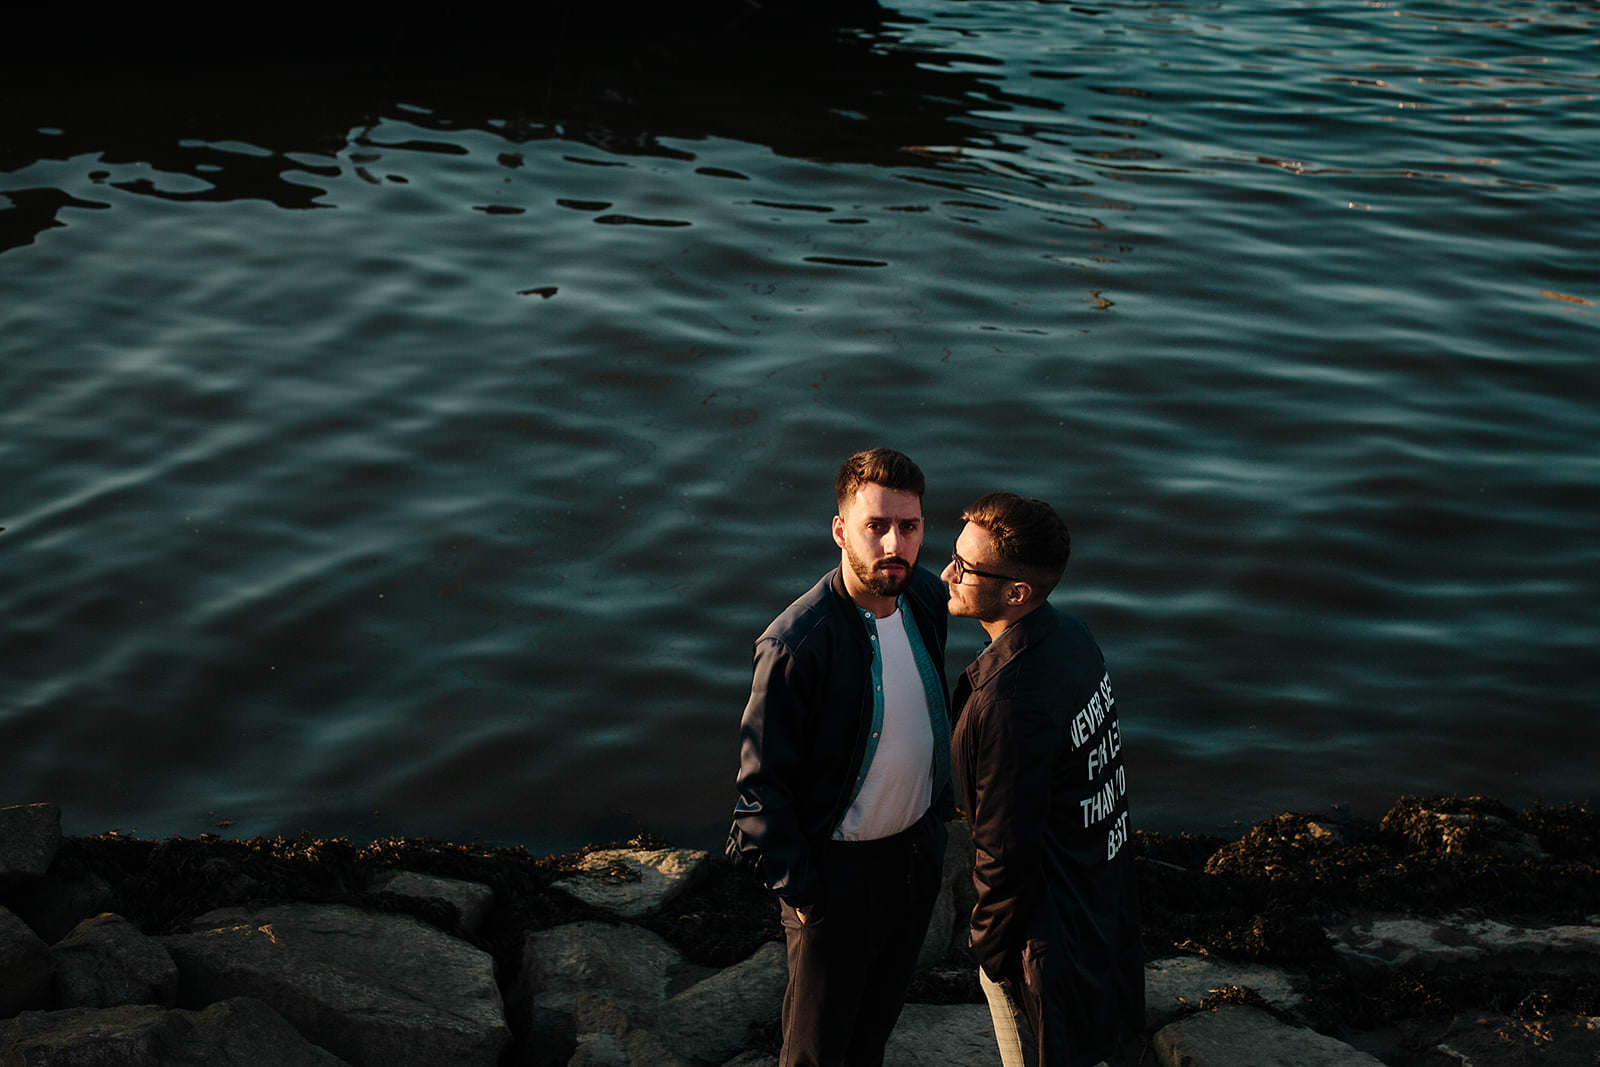 Engagement session in the Douro river